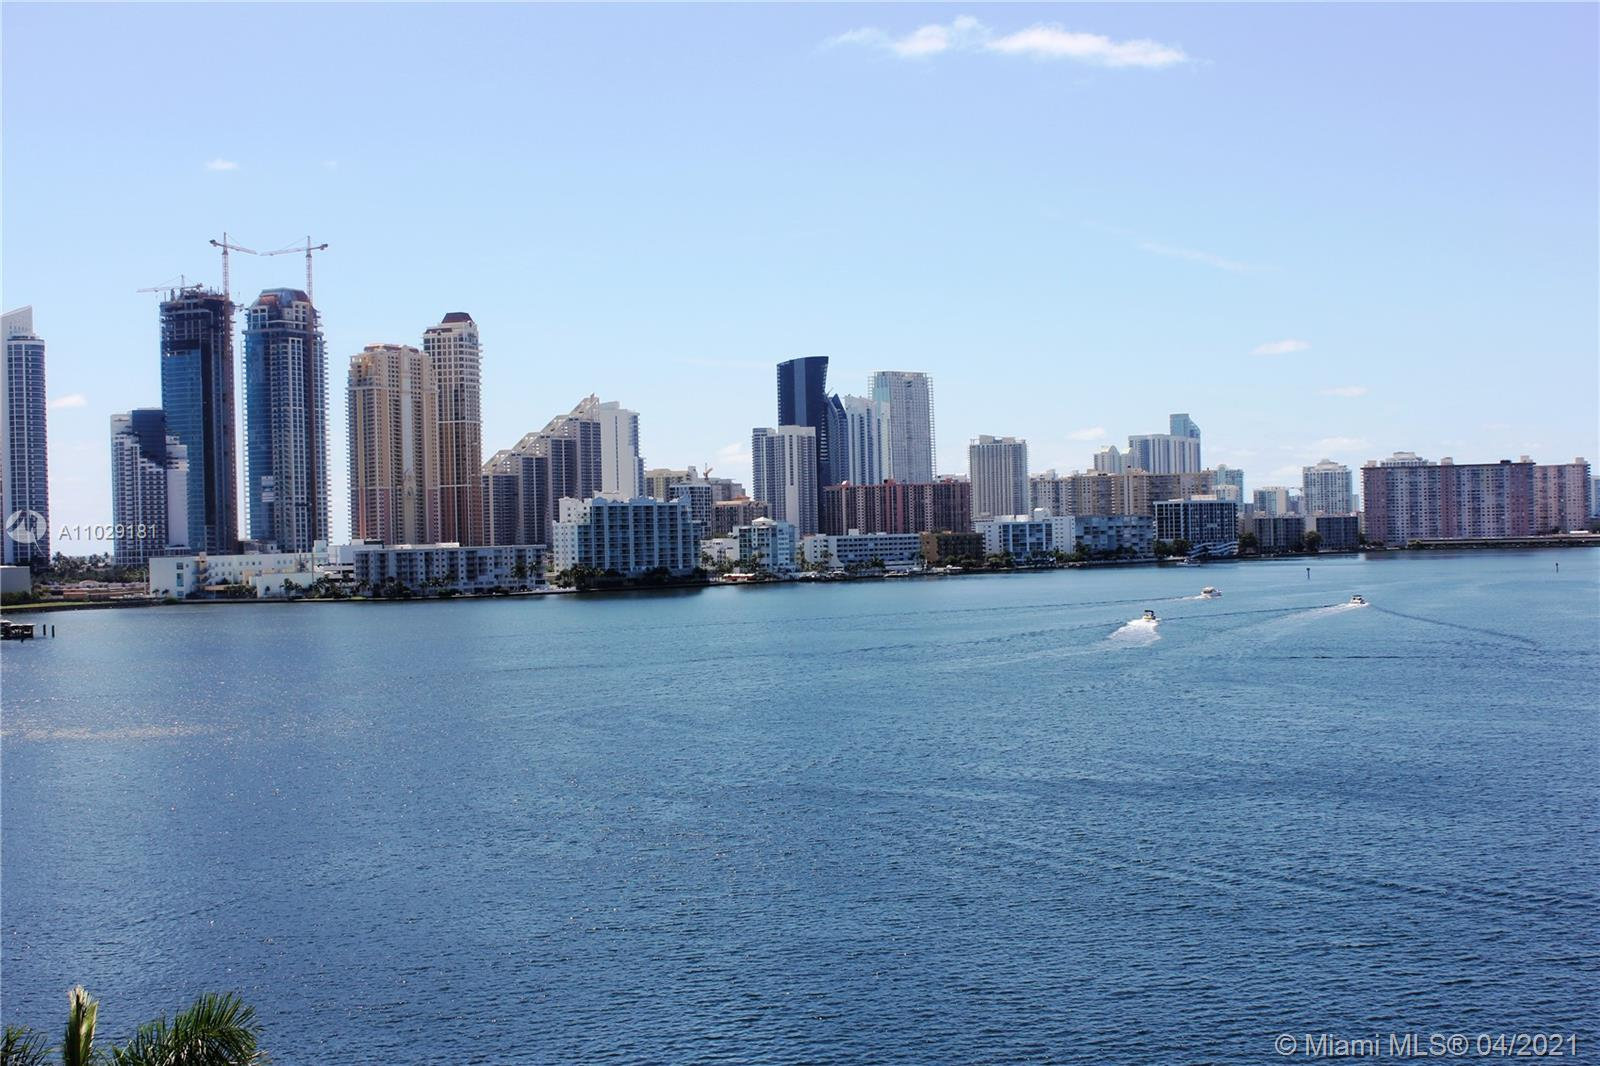 THE MOST AMAZING VIEWS OF THE OCEAN & THE INTERCOASTAL FROM EVERY WINDOW IN THIS BEAUTIFUL CONDO. SP